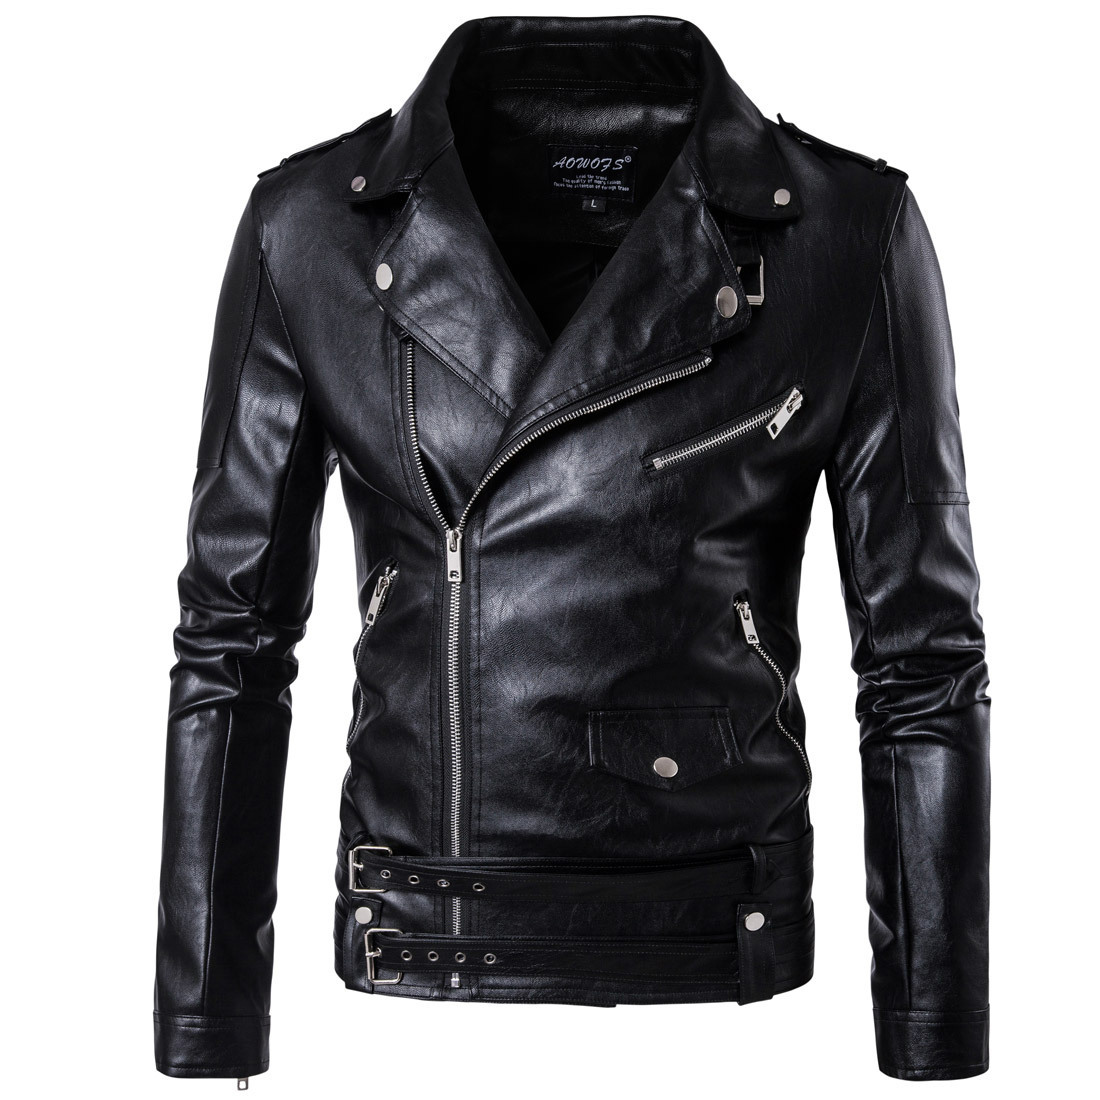 Ouma High-End Boutique Punk MEN'S Leather Coat Carrie Leather Locomotive Leather Coat Slim Fit Harley Leather Jacket D101